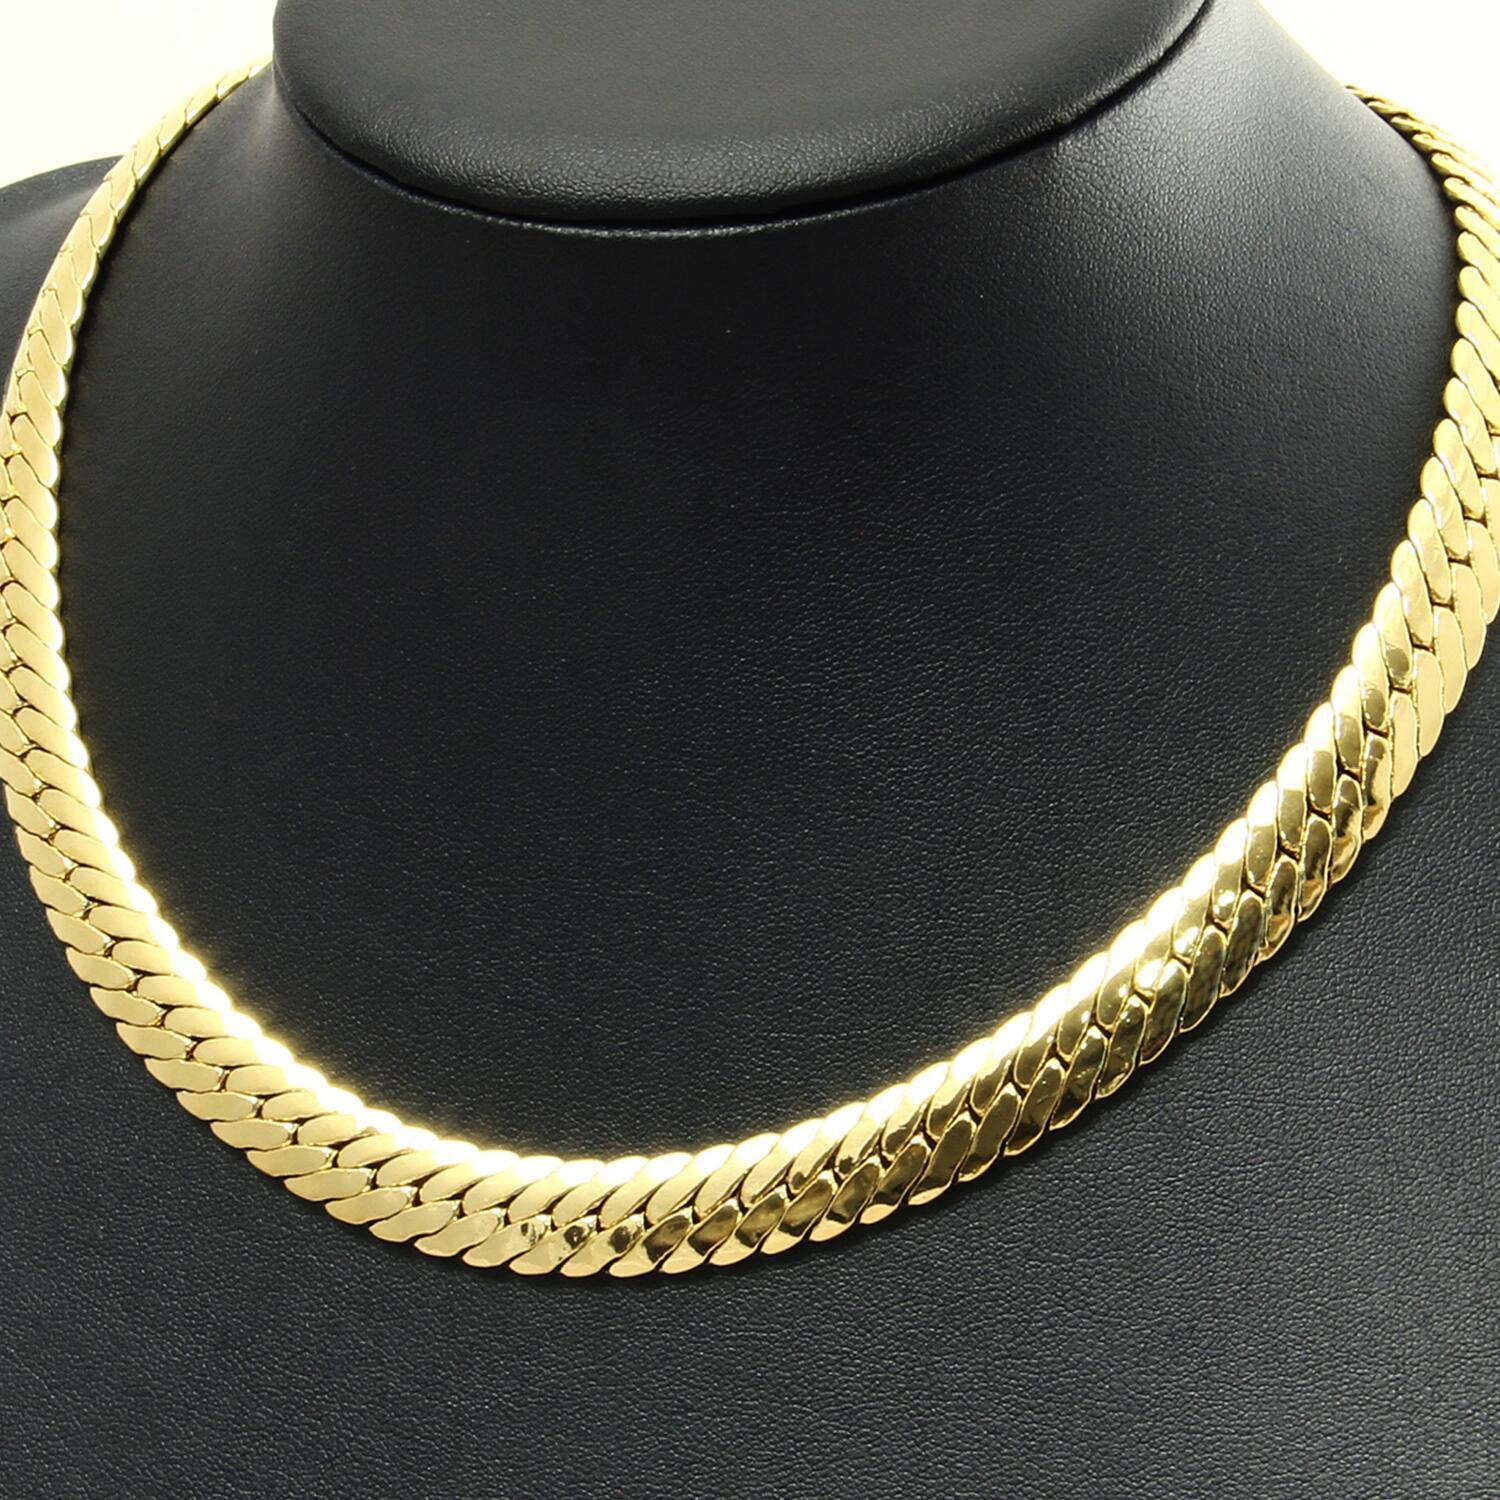 Snake Chain 0 7 16in 750 Yellow gold 18 Carat gold Plated Unisex K1122